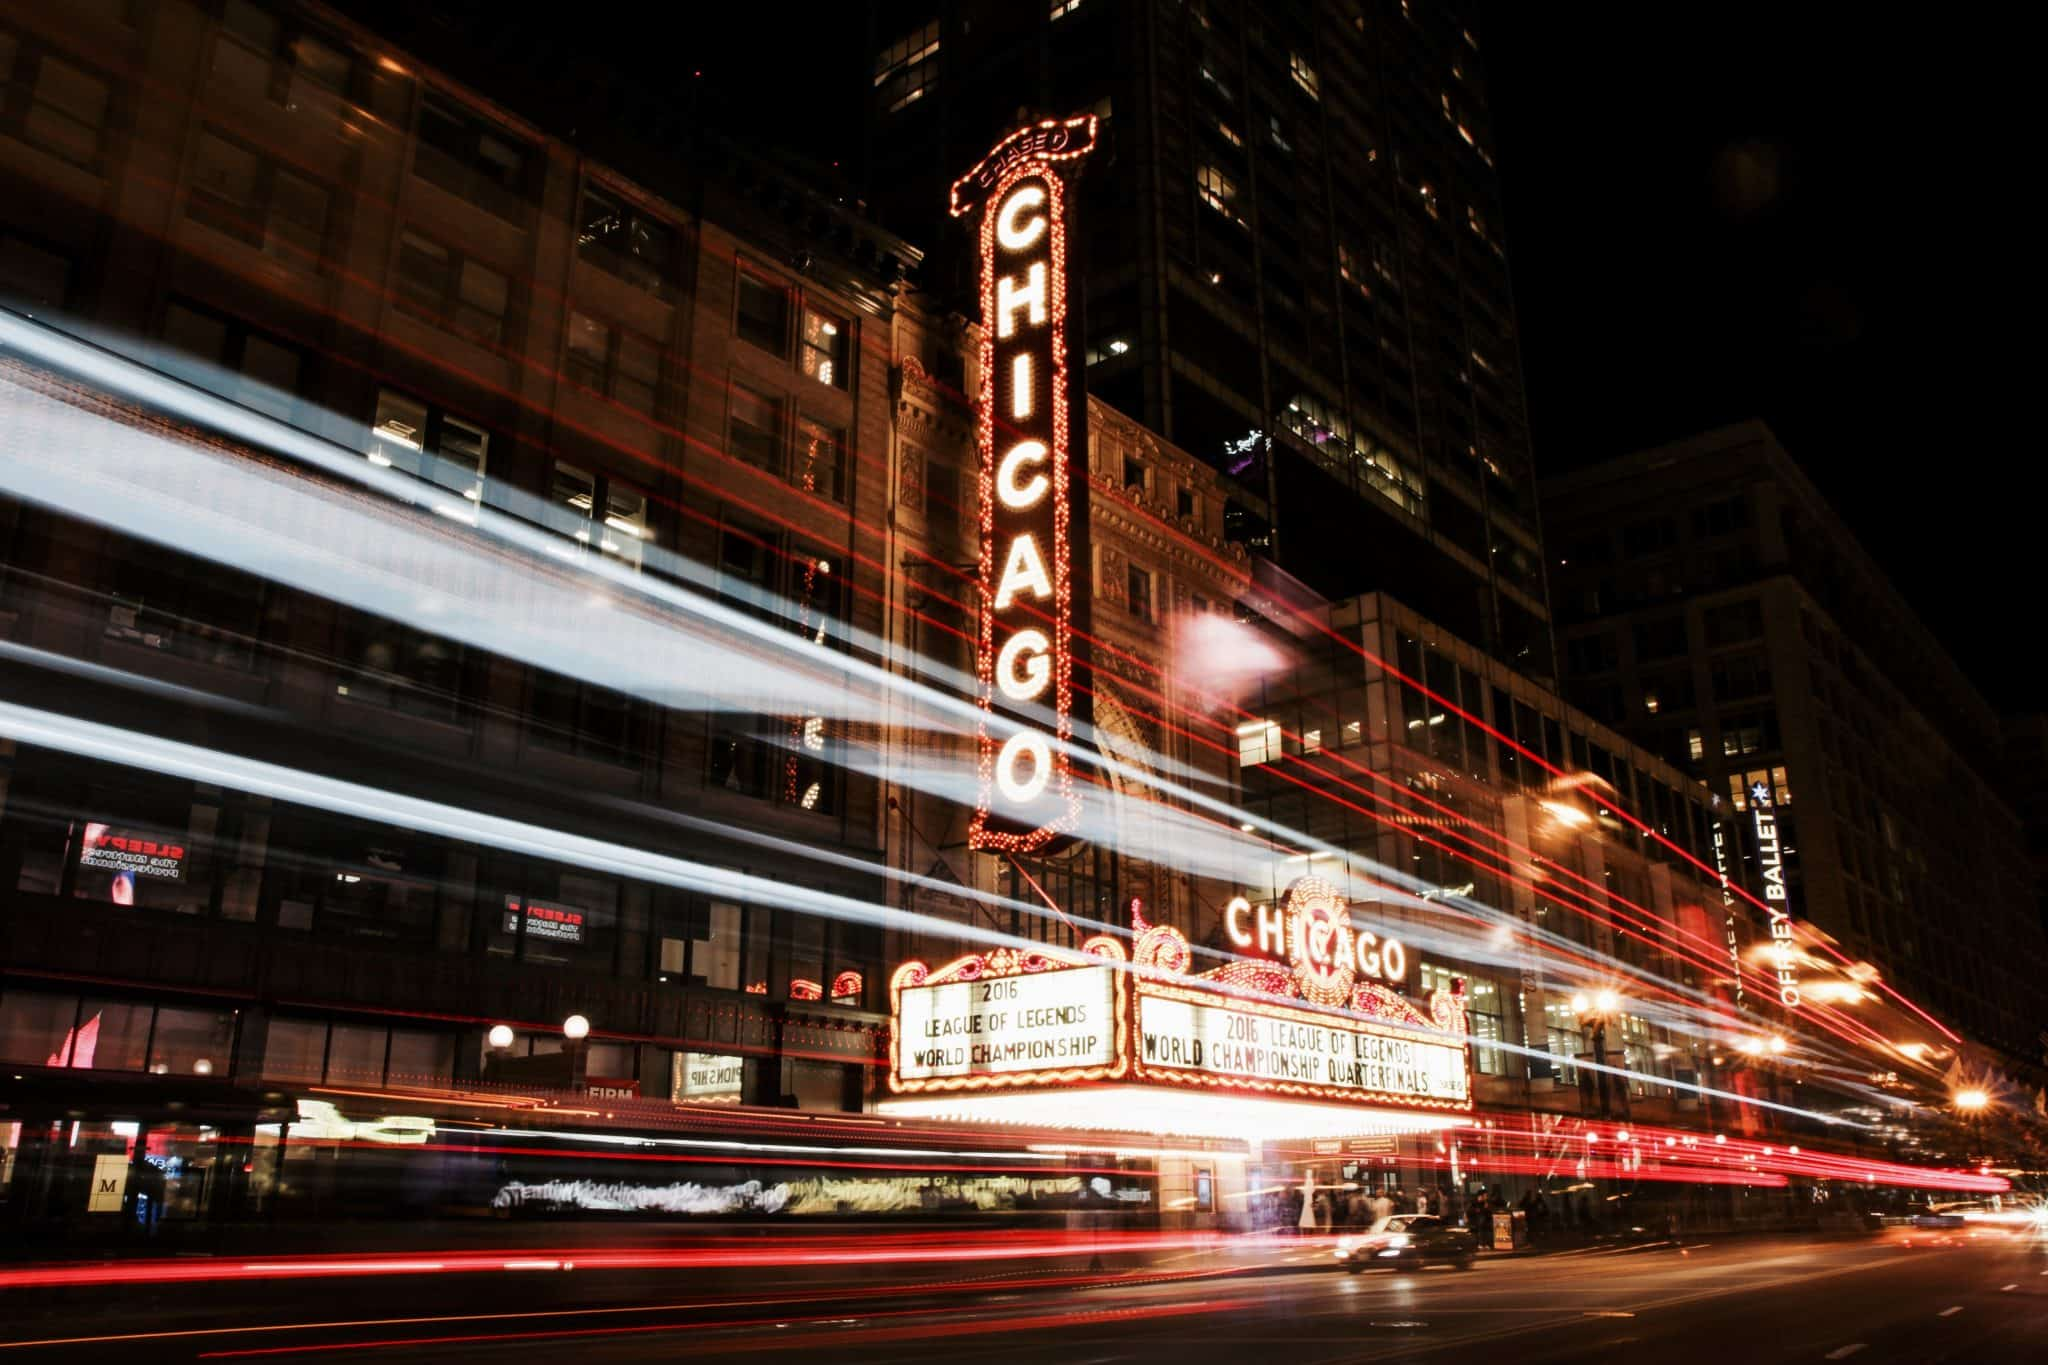 25 Free Things to Do in Chicago